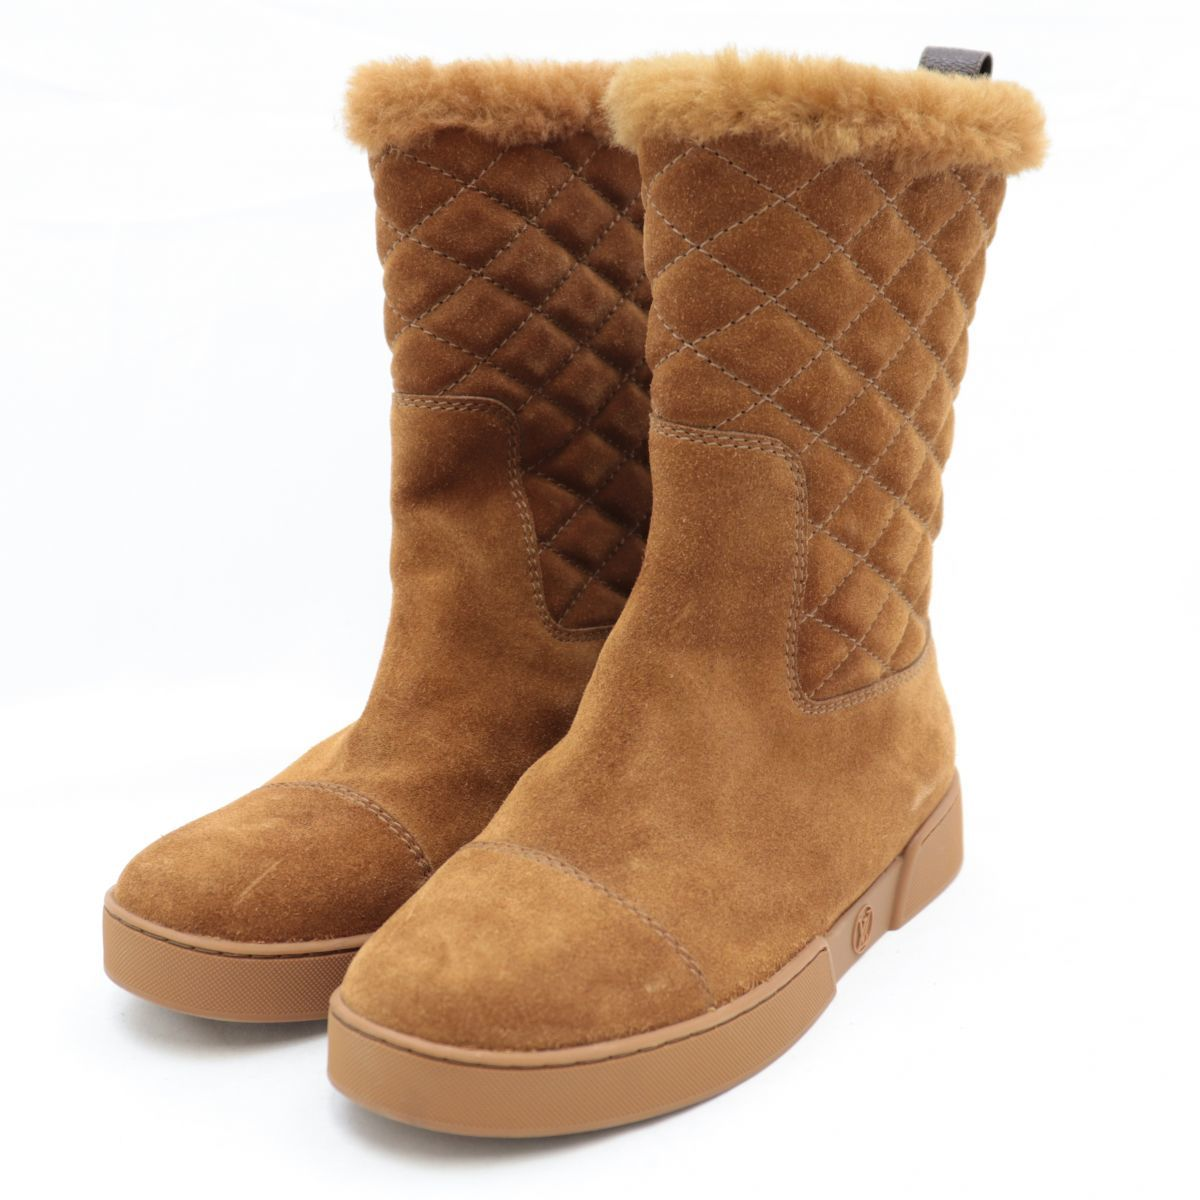 Louis Vuitton 16AW Monogram Mouton Boots Women's Camel 34 Suede Leather Quilting